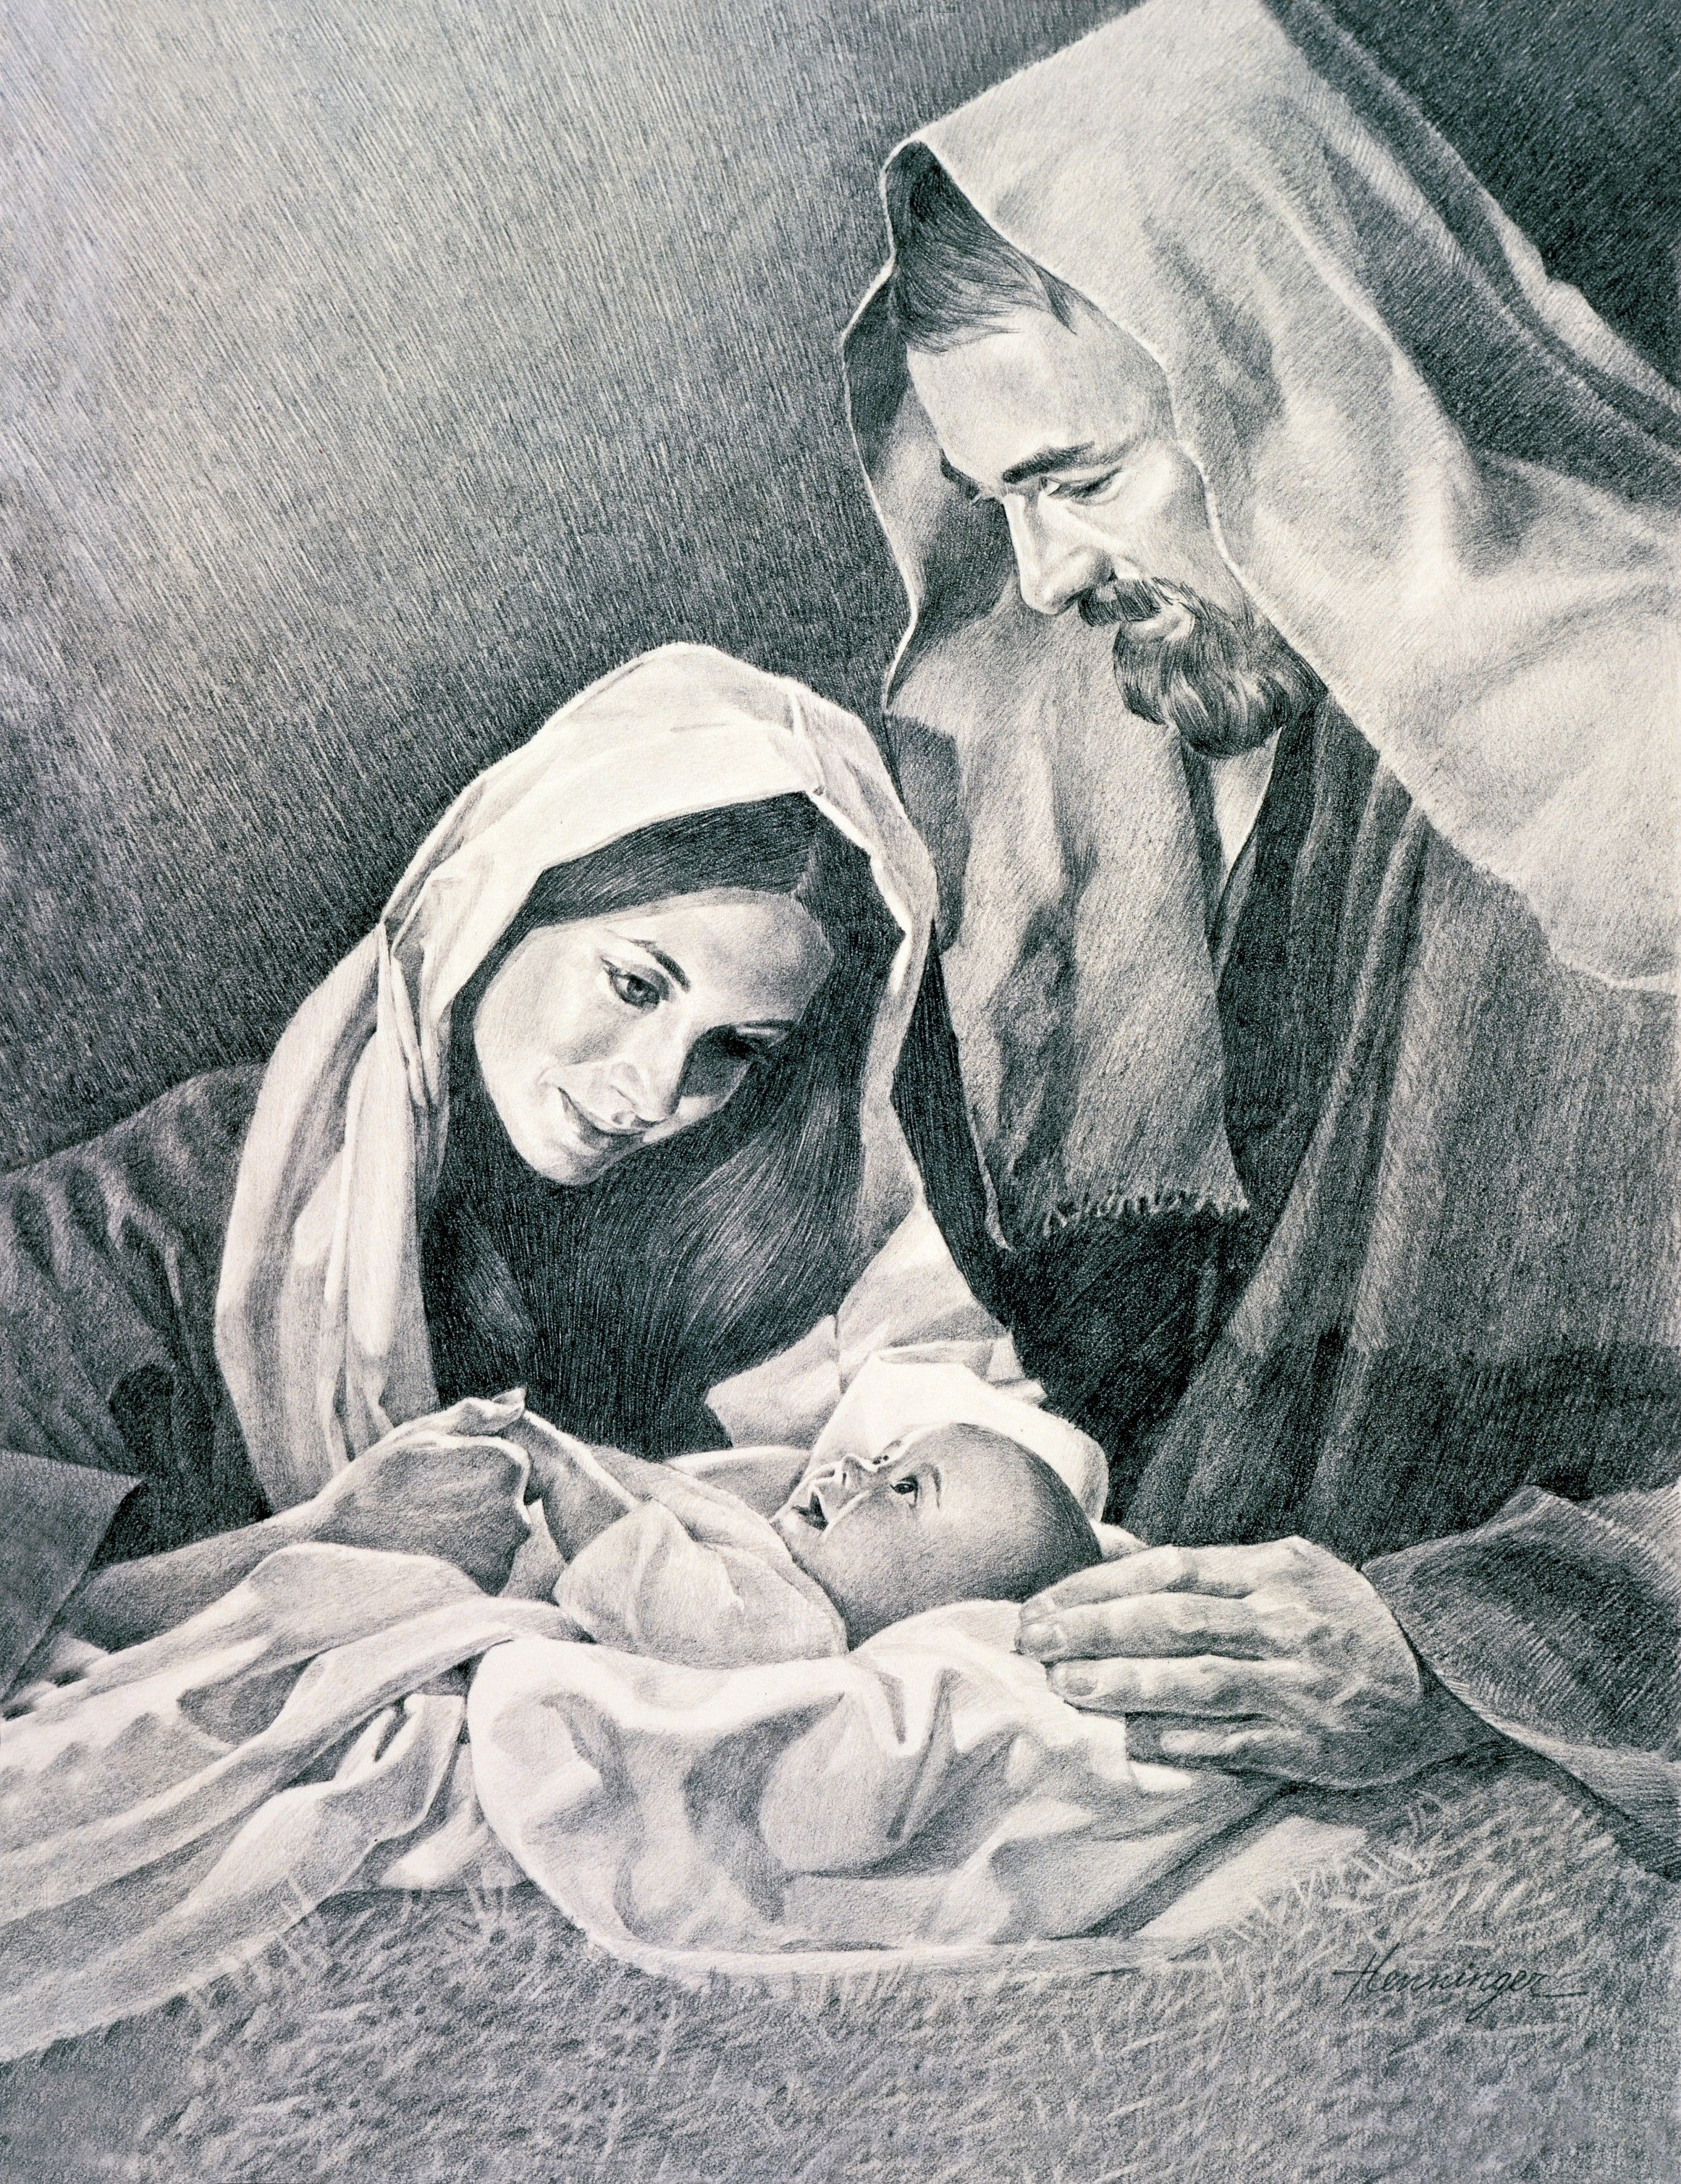 The Nativity, by Ted Henninger (62495); GAK 201; Primary manual 1-16; Primary manual 2-06; Luke 2:7